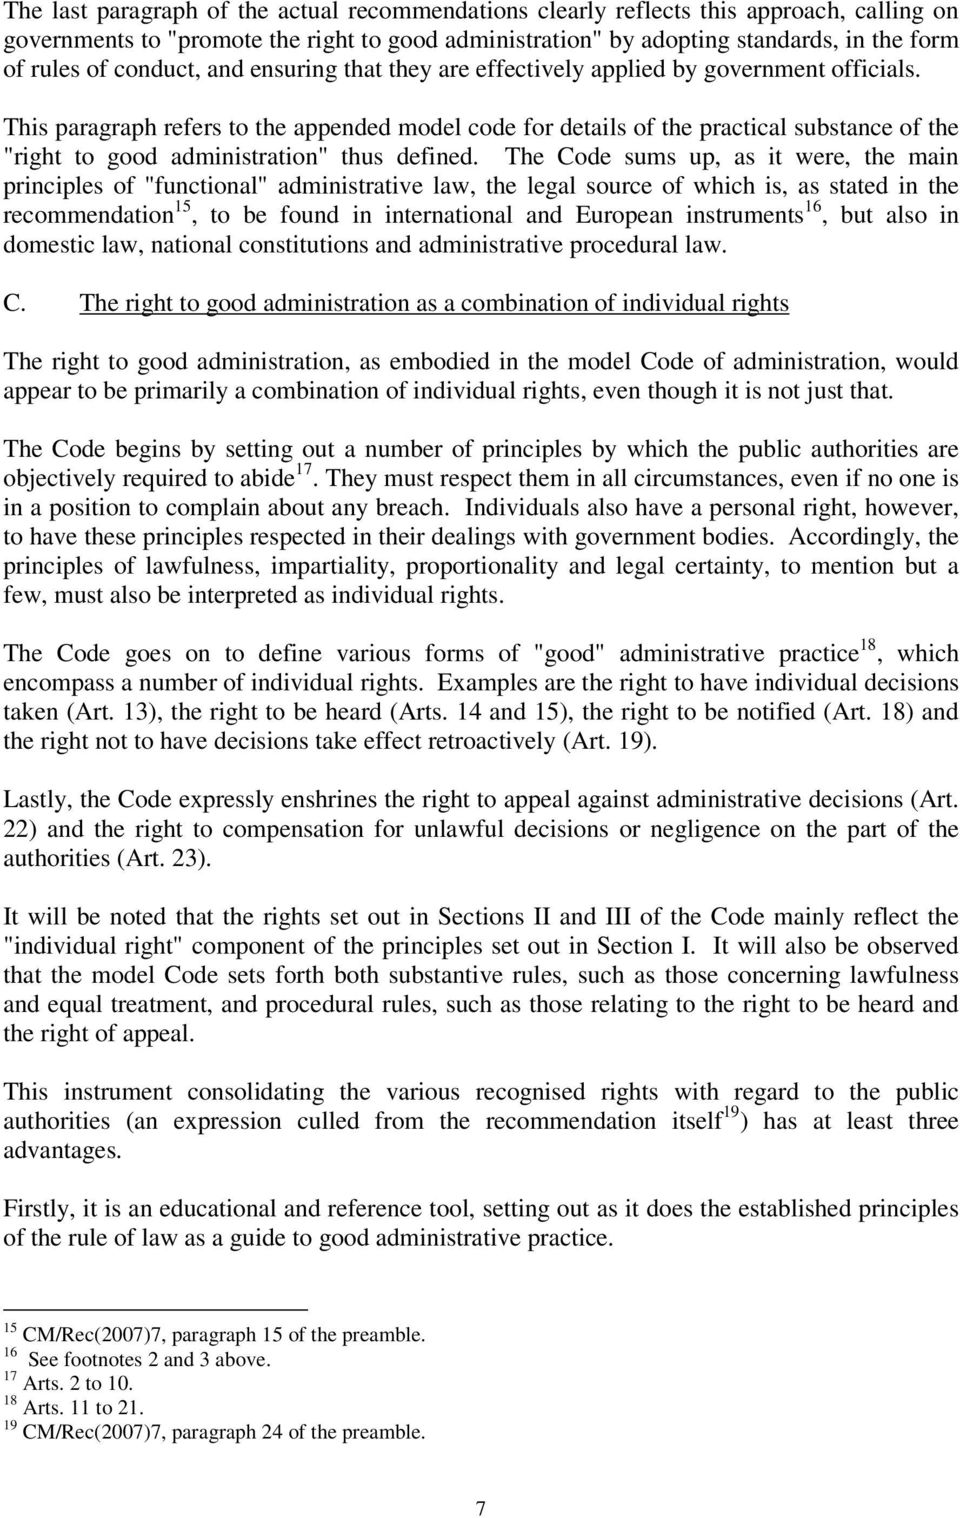 "This paragraph refers to the appended model code for details of the practical substance of the ""right to good administration"" thus defined."